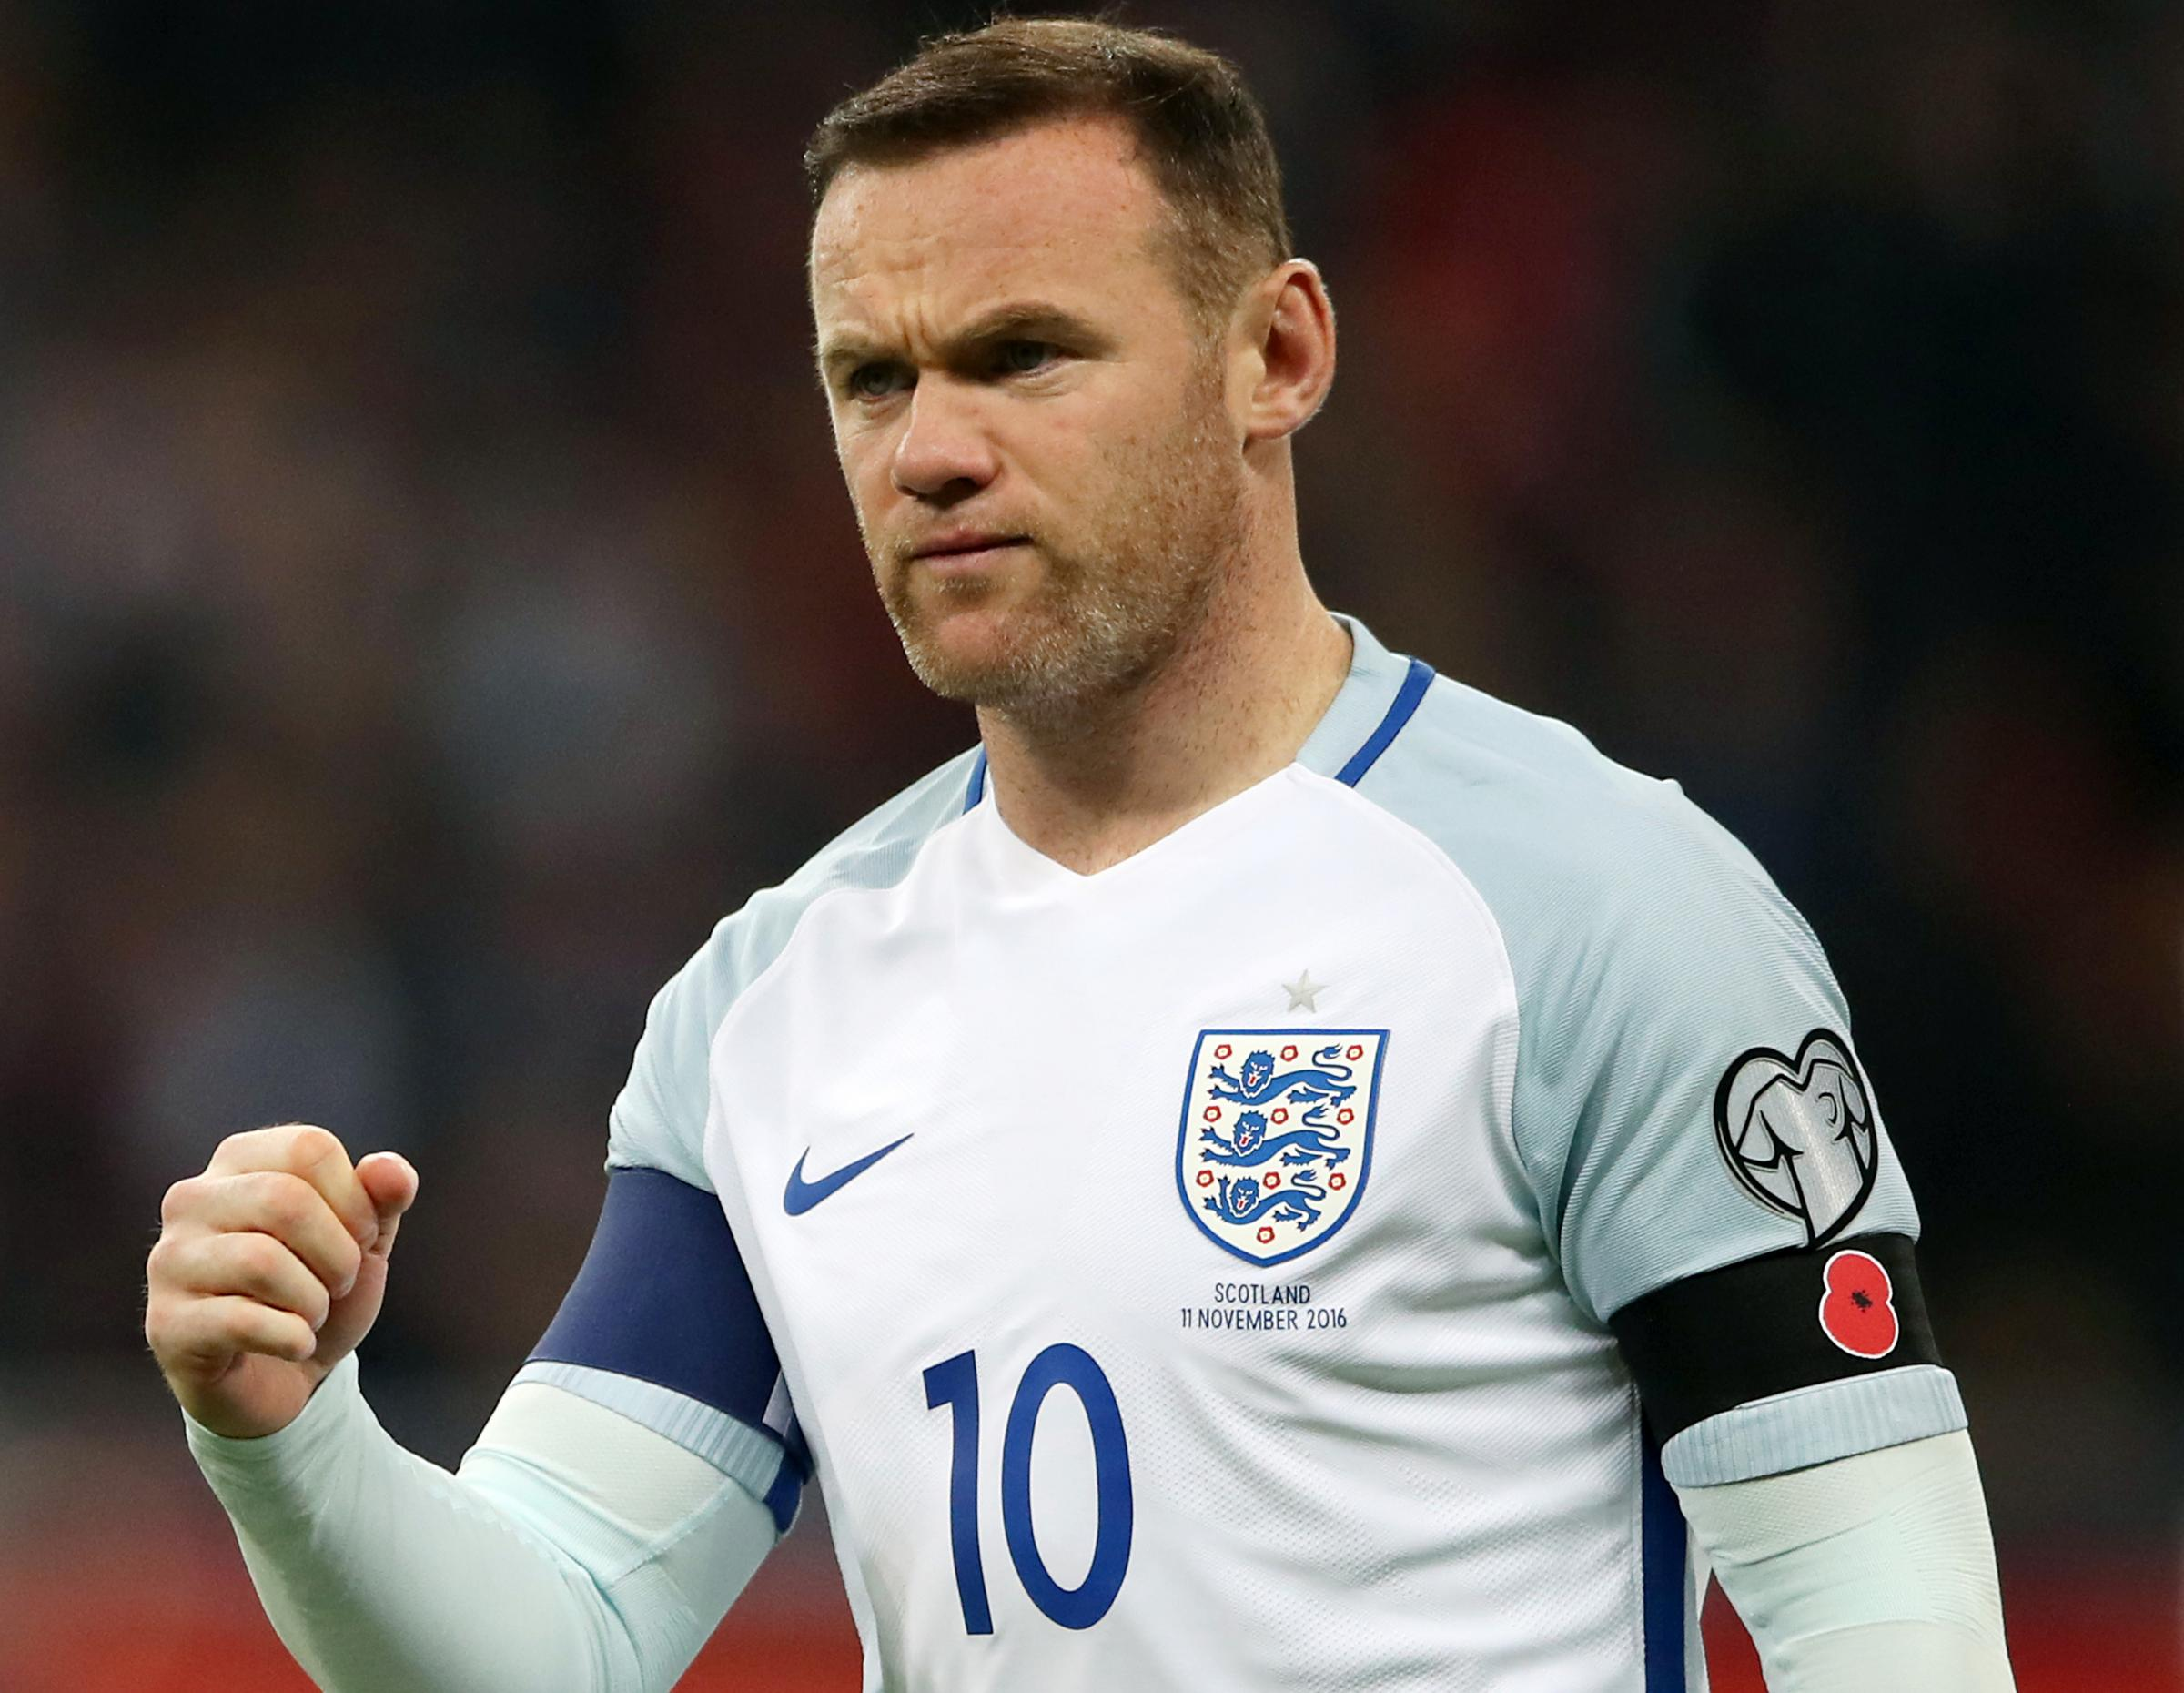 Wayne Rooney, who retired from international football, has been included in the England squad for one game only. Picture: PA